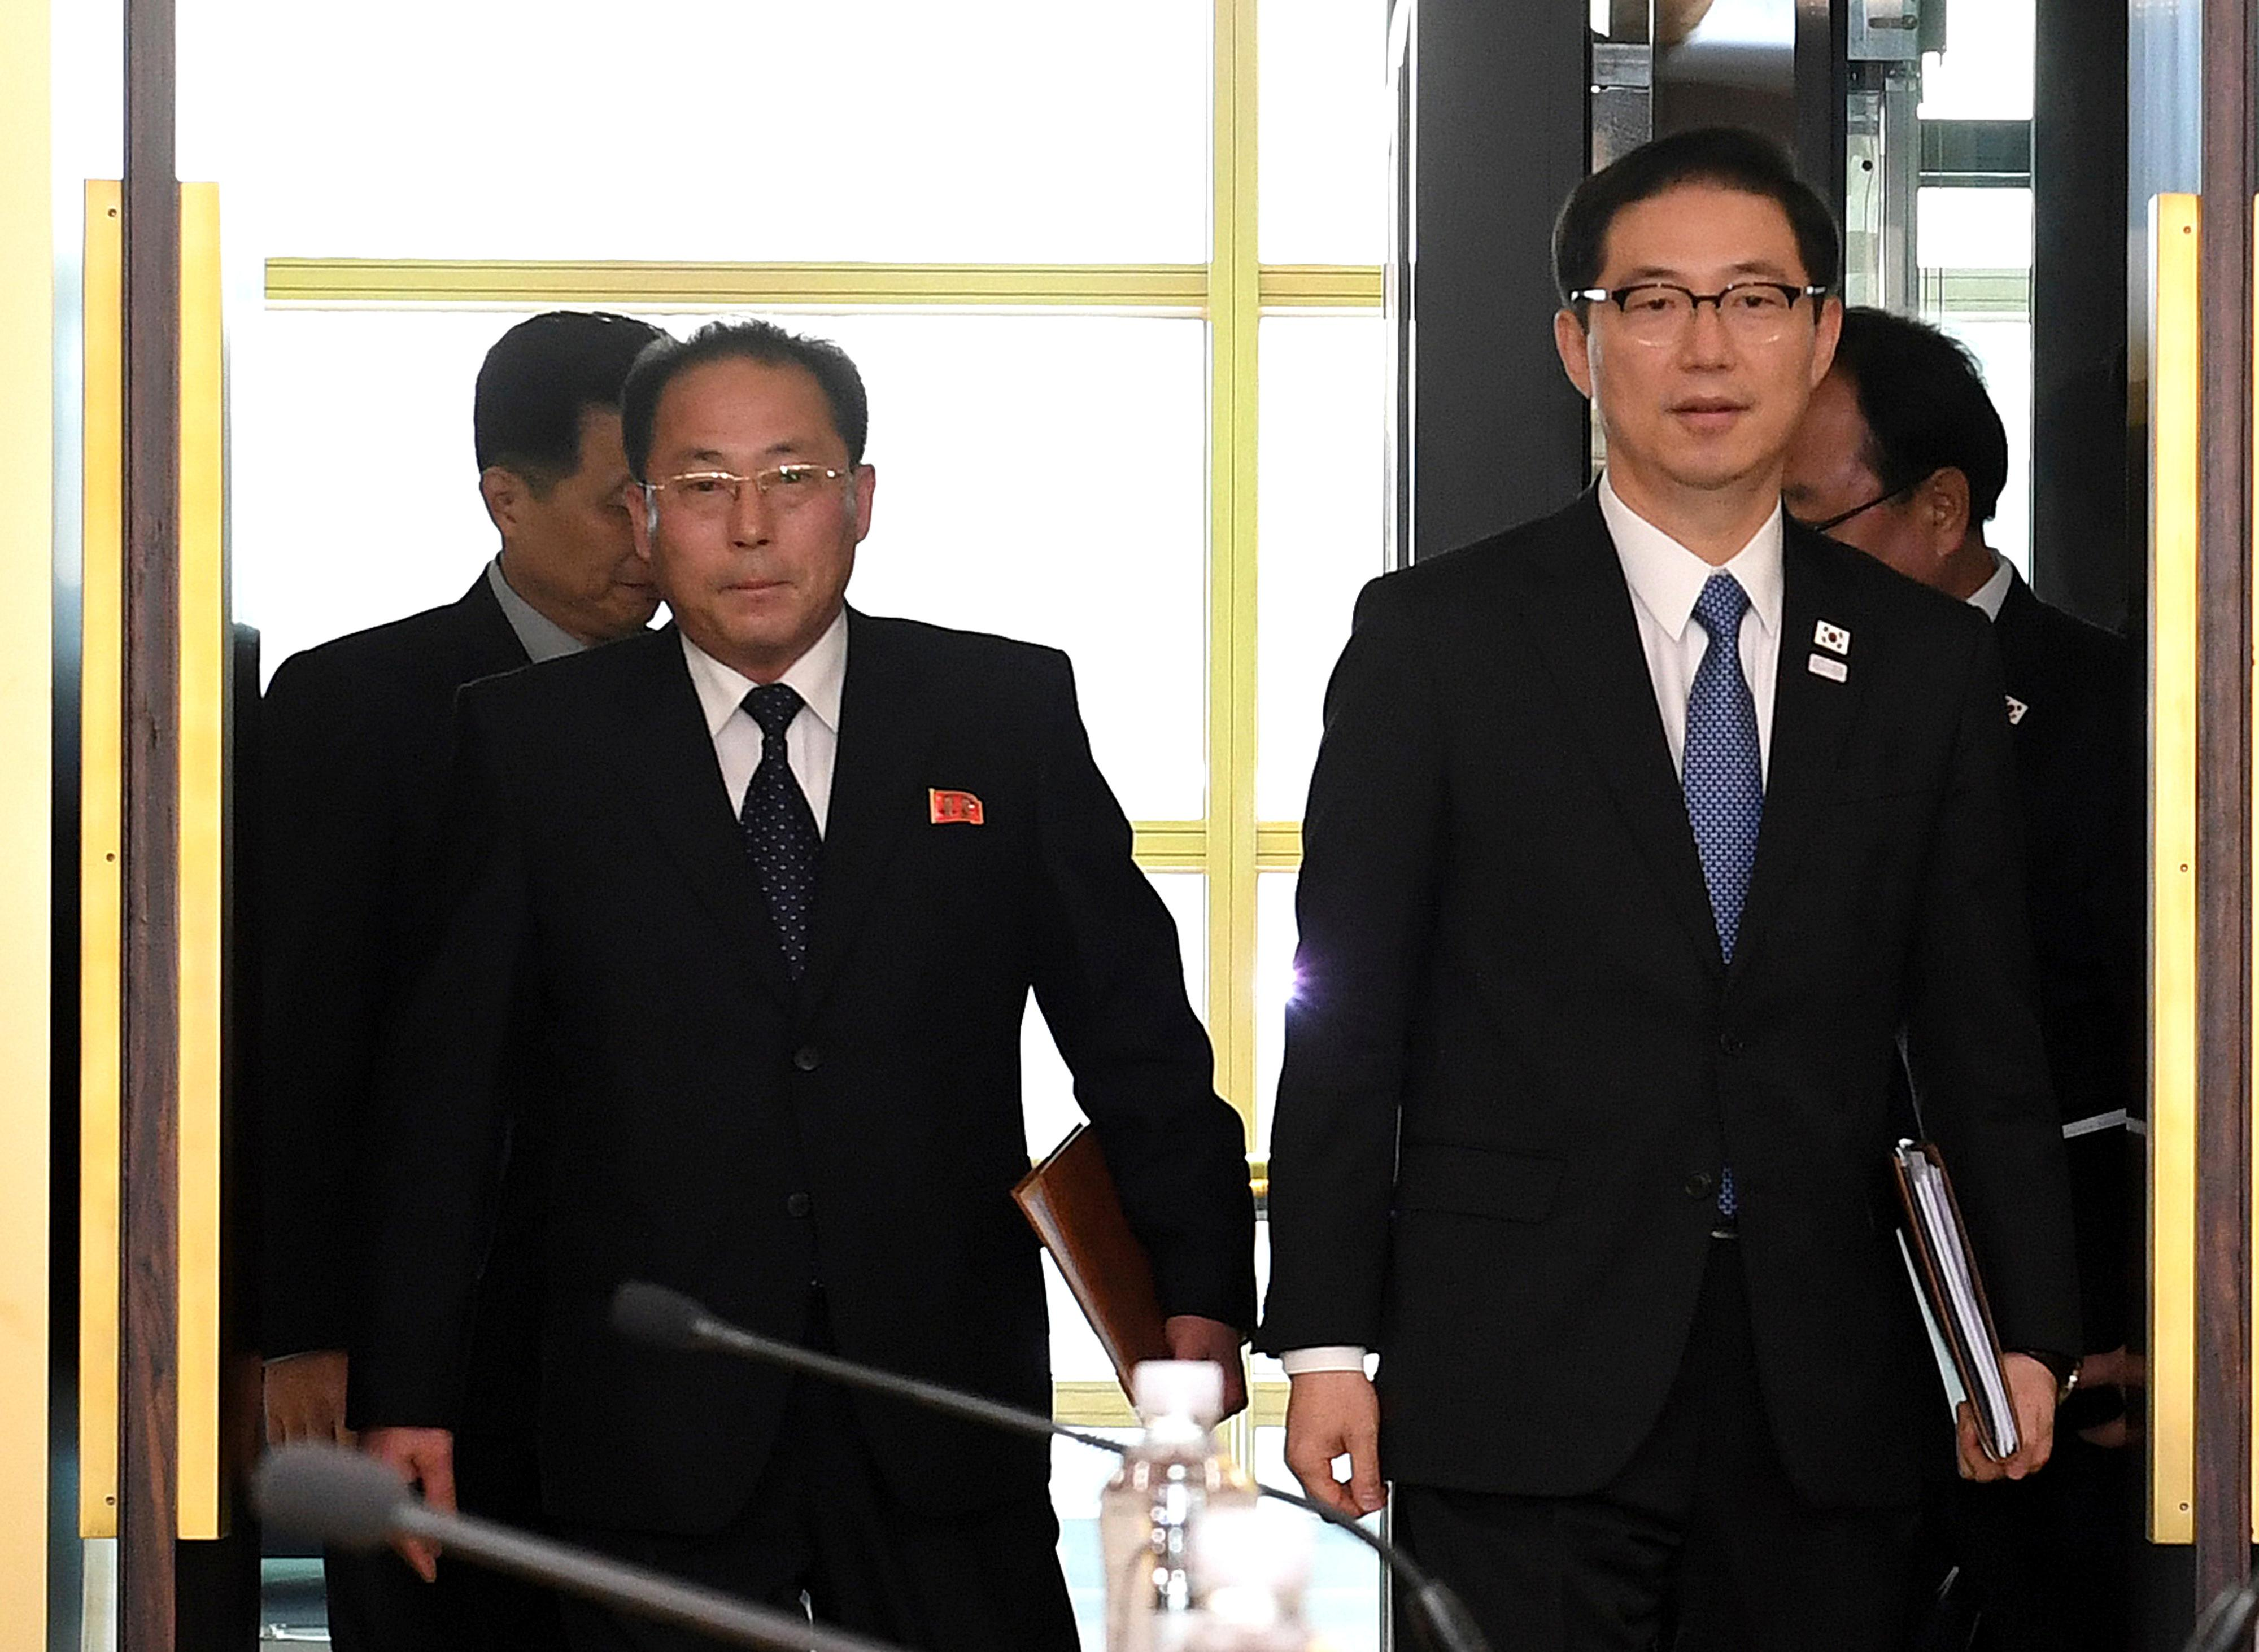 In this photo provided by South Korea Unification Ministry, South Korean Vice Unification Minister Chun Hae-sung, right, and the head of North Korean delegation Jon Jong Su arrive for their meeting at Panmunjom in the Demilitarized Zone in Paju, South Korea, Wednesday, Jan. 17, 2018. The two Koreas are meeting Wednesday for the third time in about 10 days to continue their discussions on Olympics cooperation, days ahead of talks with the IOC on North Korean participation in the upcoming Winter Games in the South. (South Korea Unification Ministry via AP)